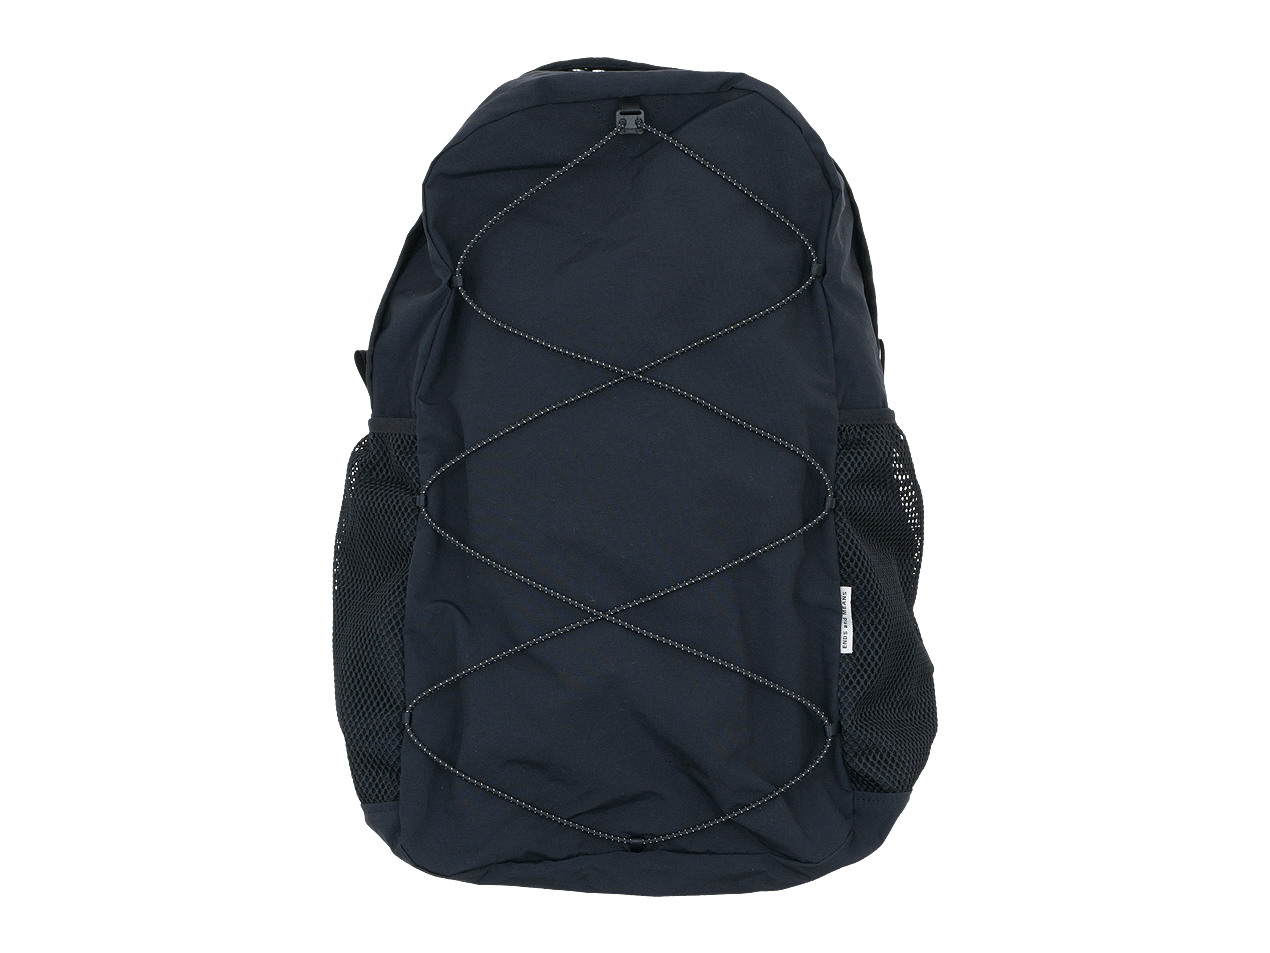 ENDS and MEANS Packable Back Pack / Travel Pouch